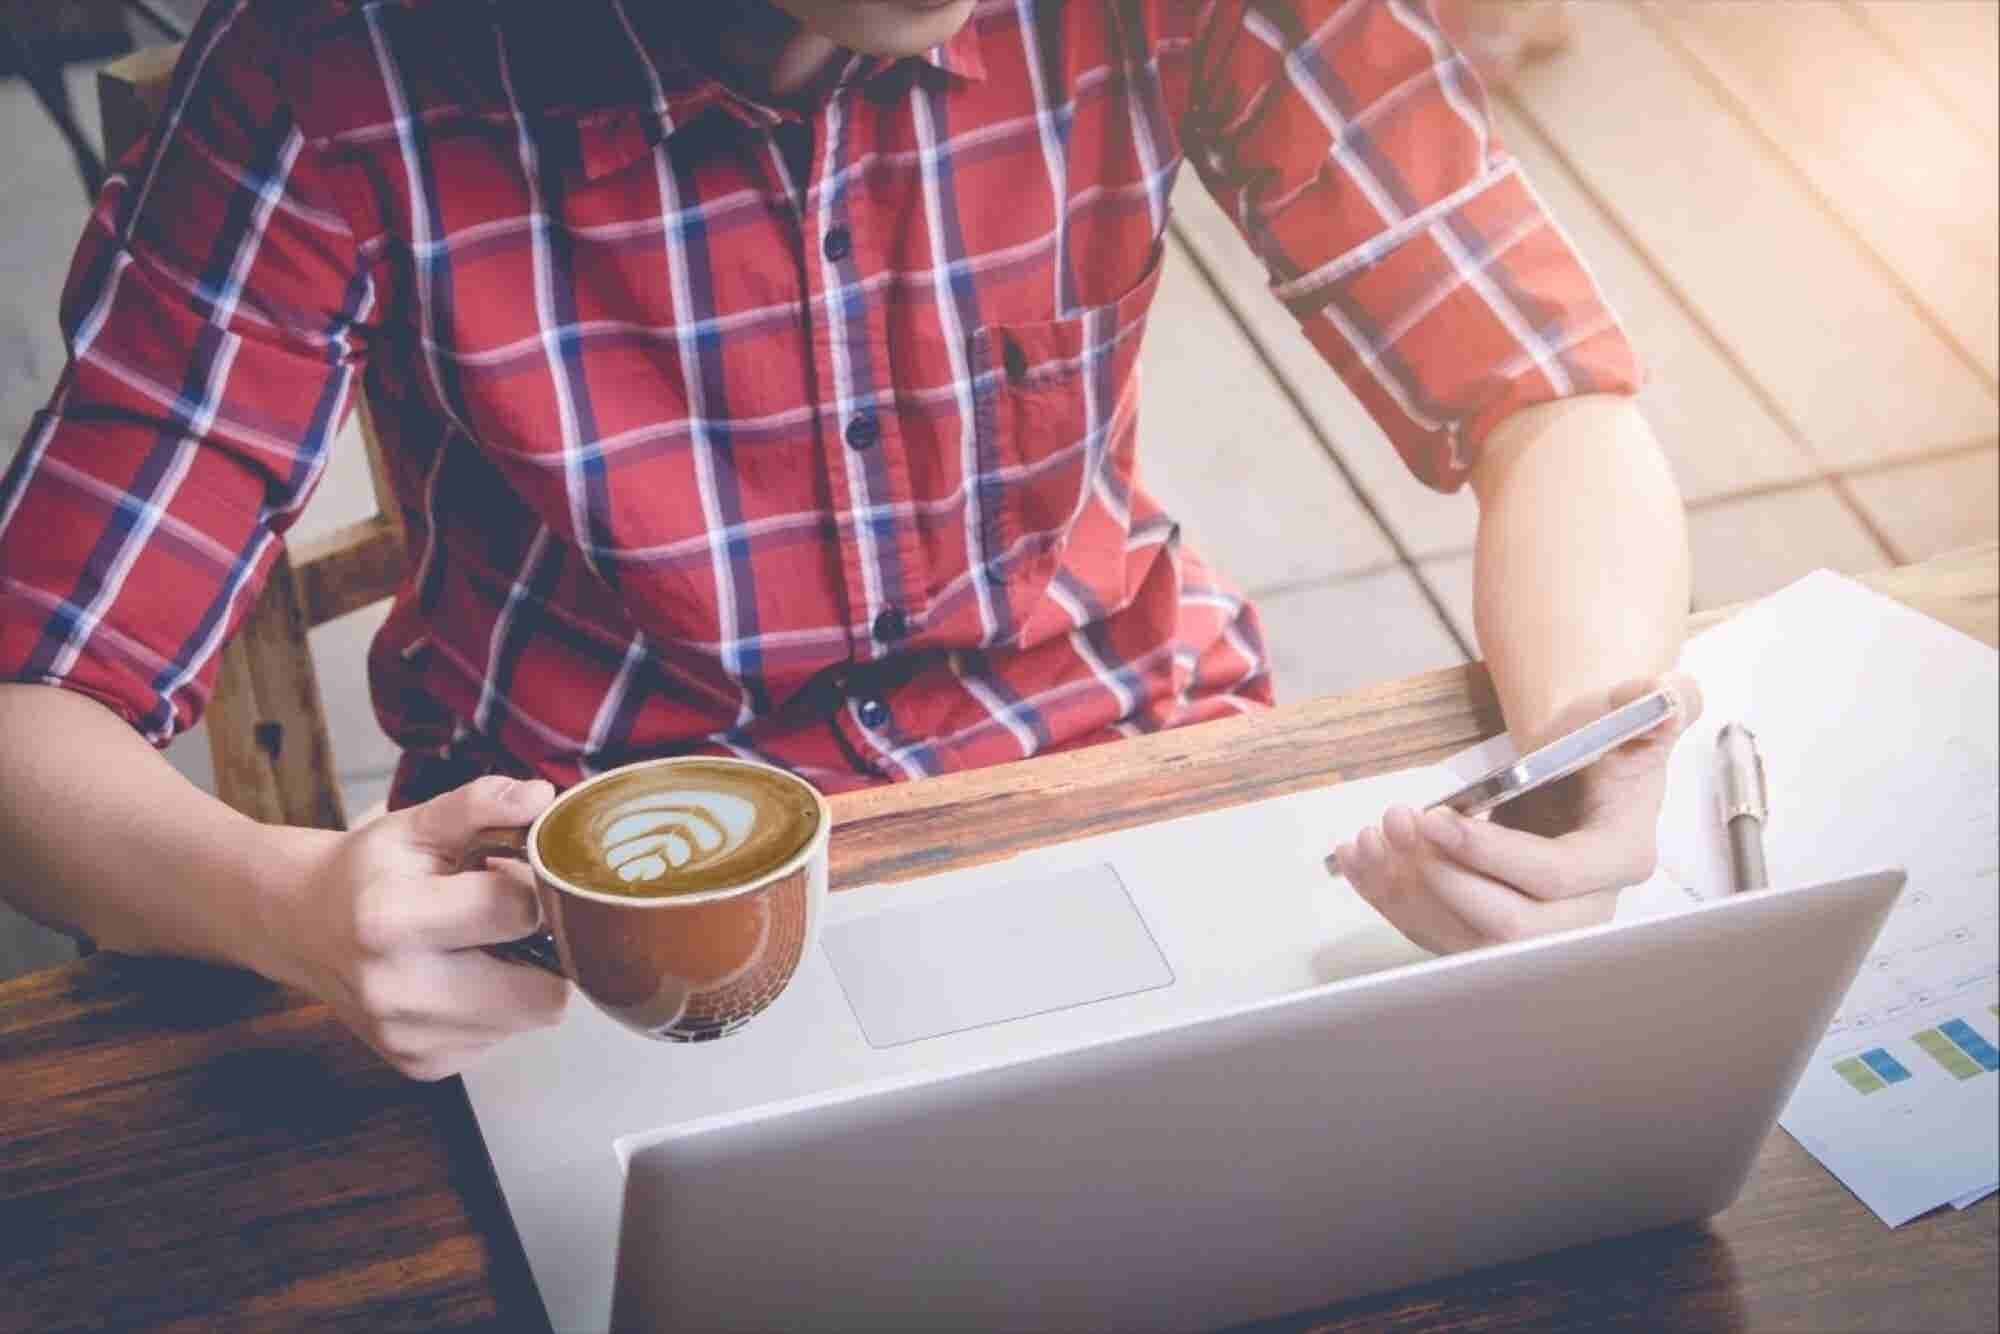 4 Ways Entrepreneurs Can Accelerate Online Business Growth This Quarter